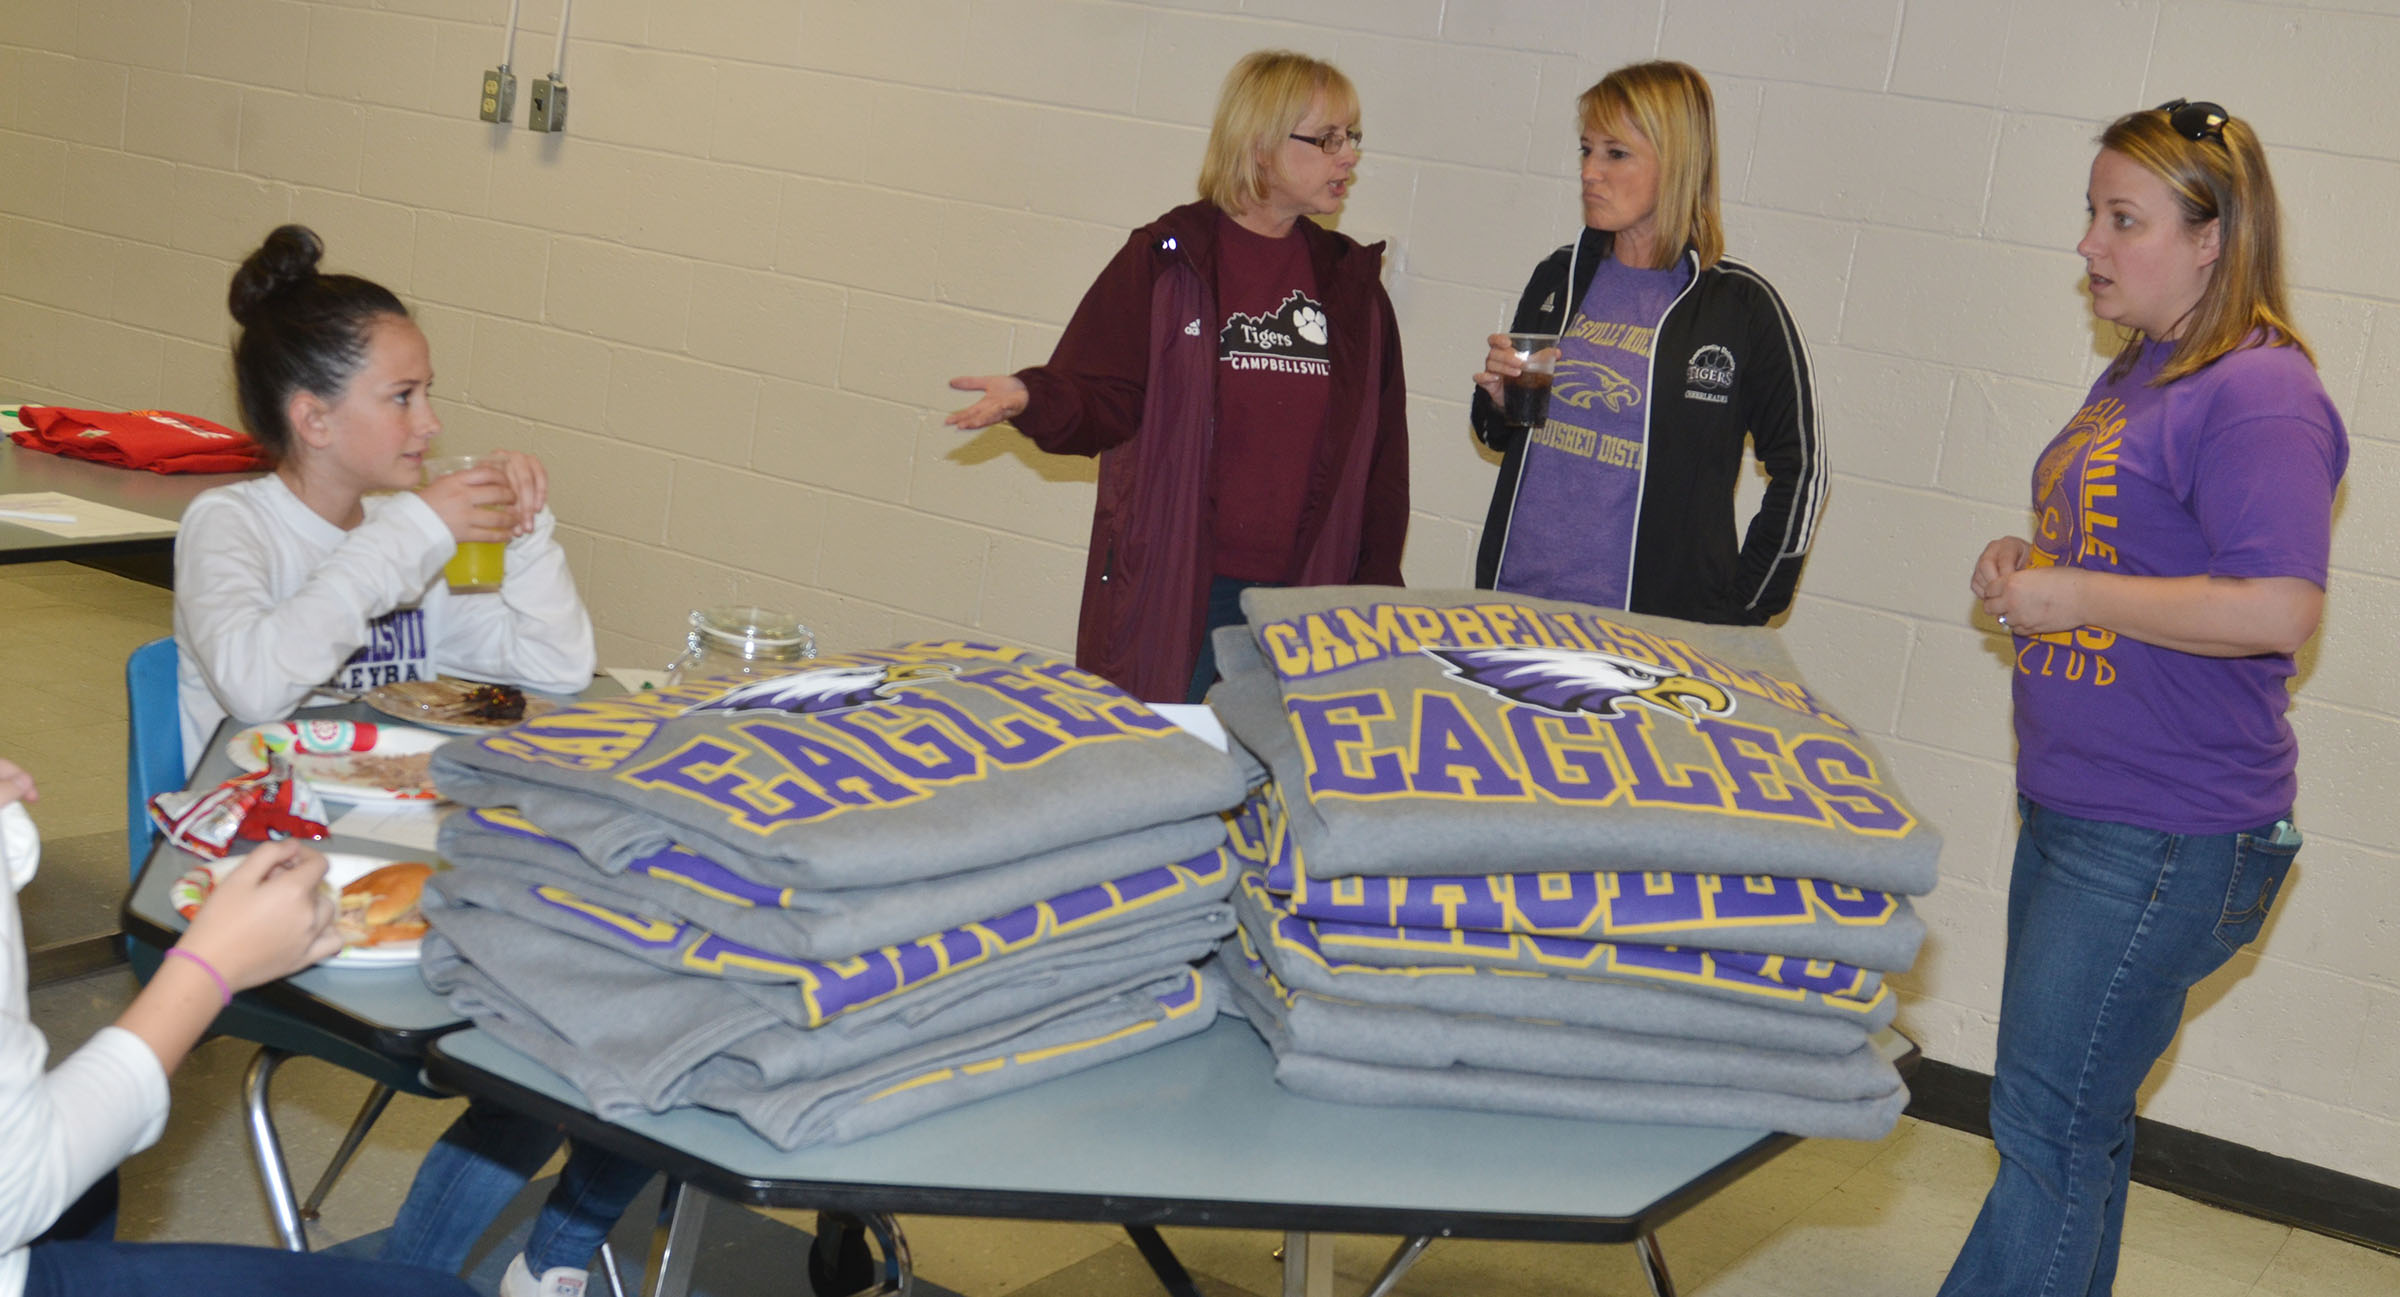 CMS volleyball player and seventh-grader Sarah Adkins, at left, sells Campbellsville Eagles blankets.